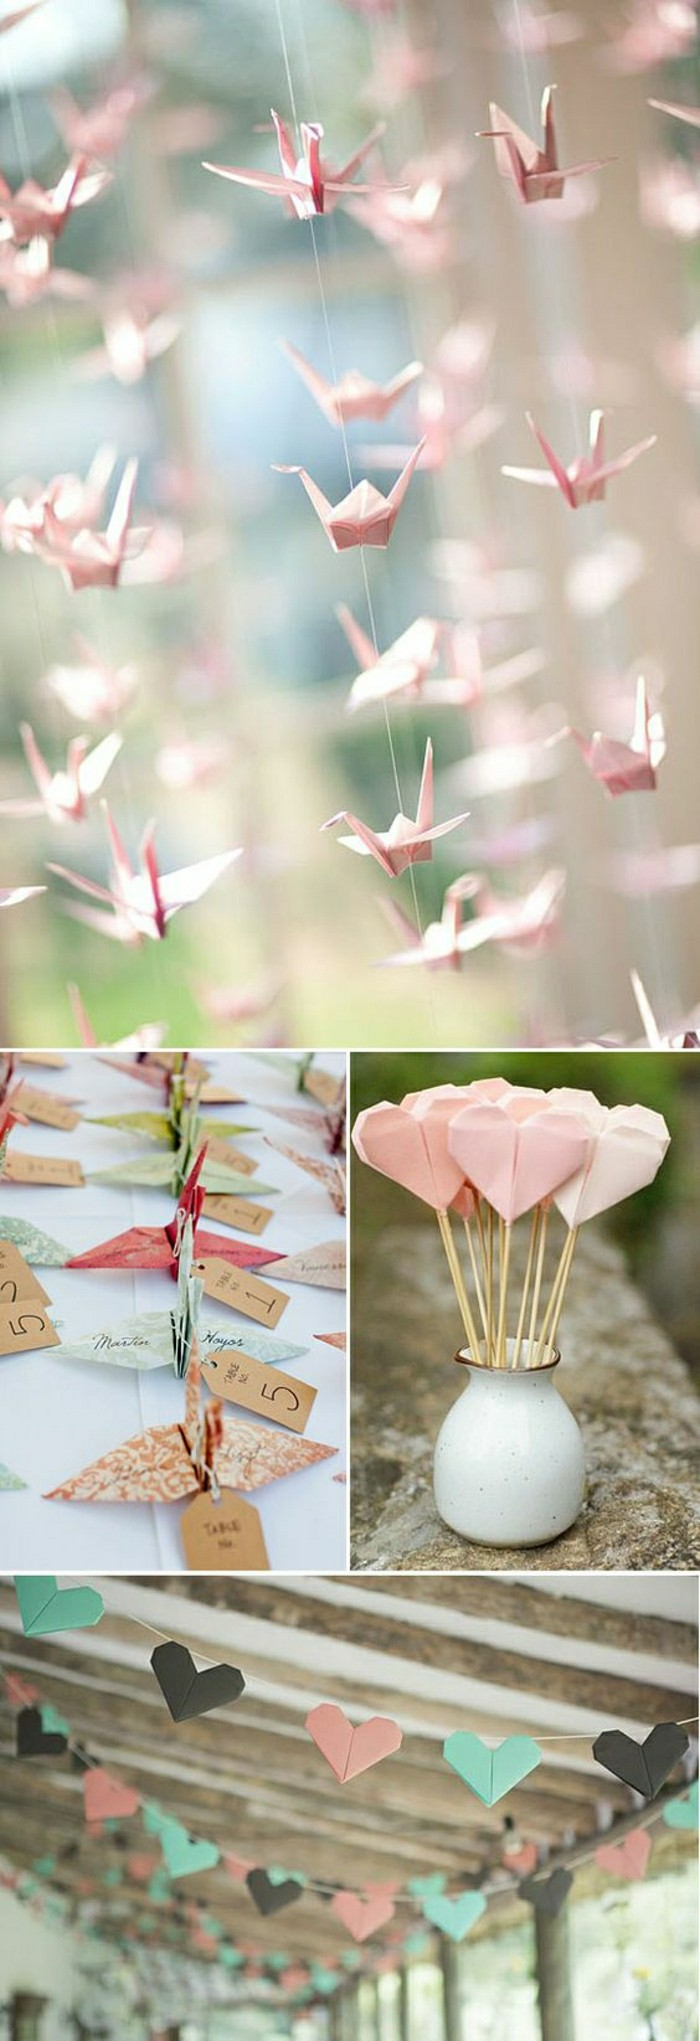 0-originale-decoration-mariage-en-papier-coloré-en-rose-comment-bien-decorer